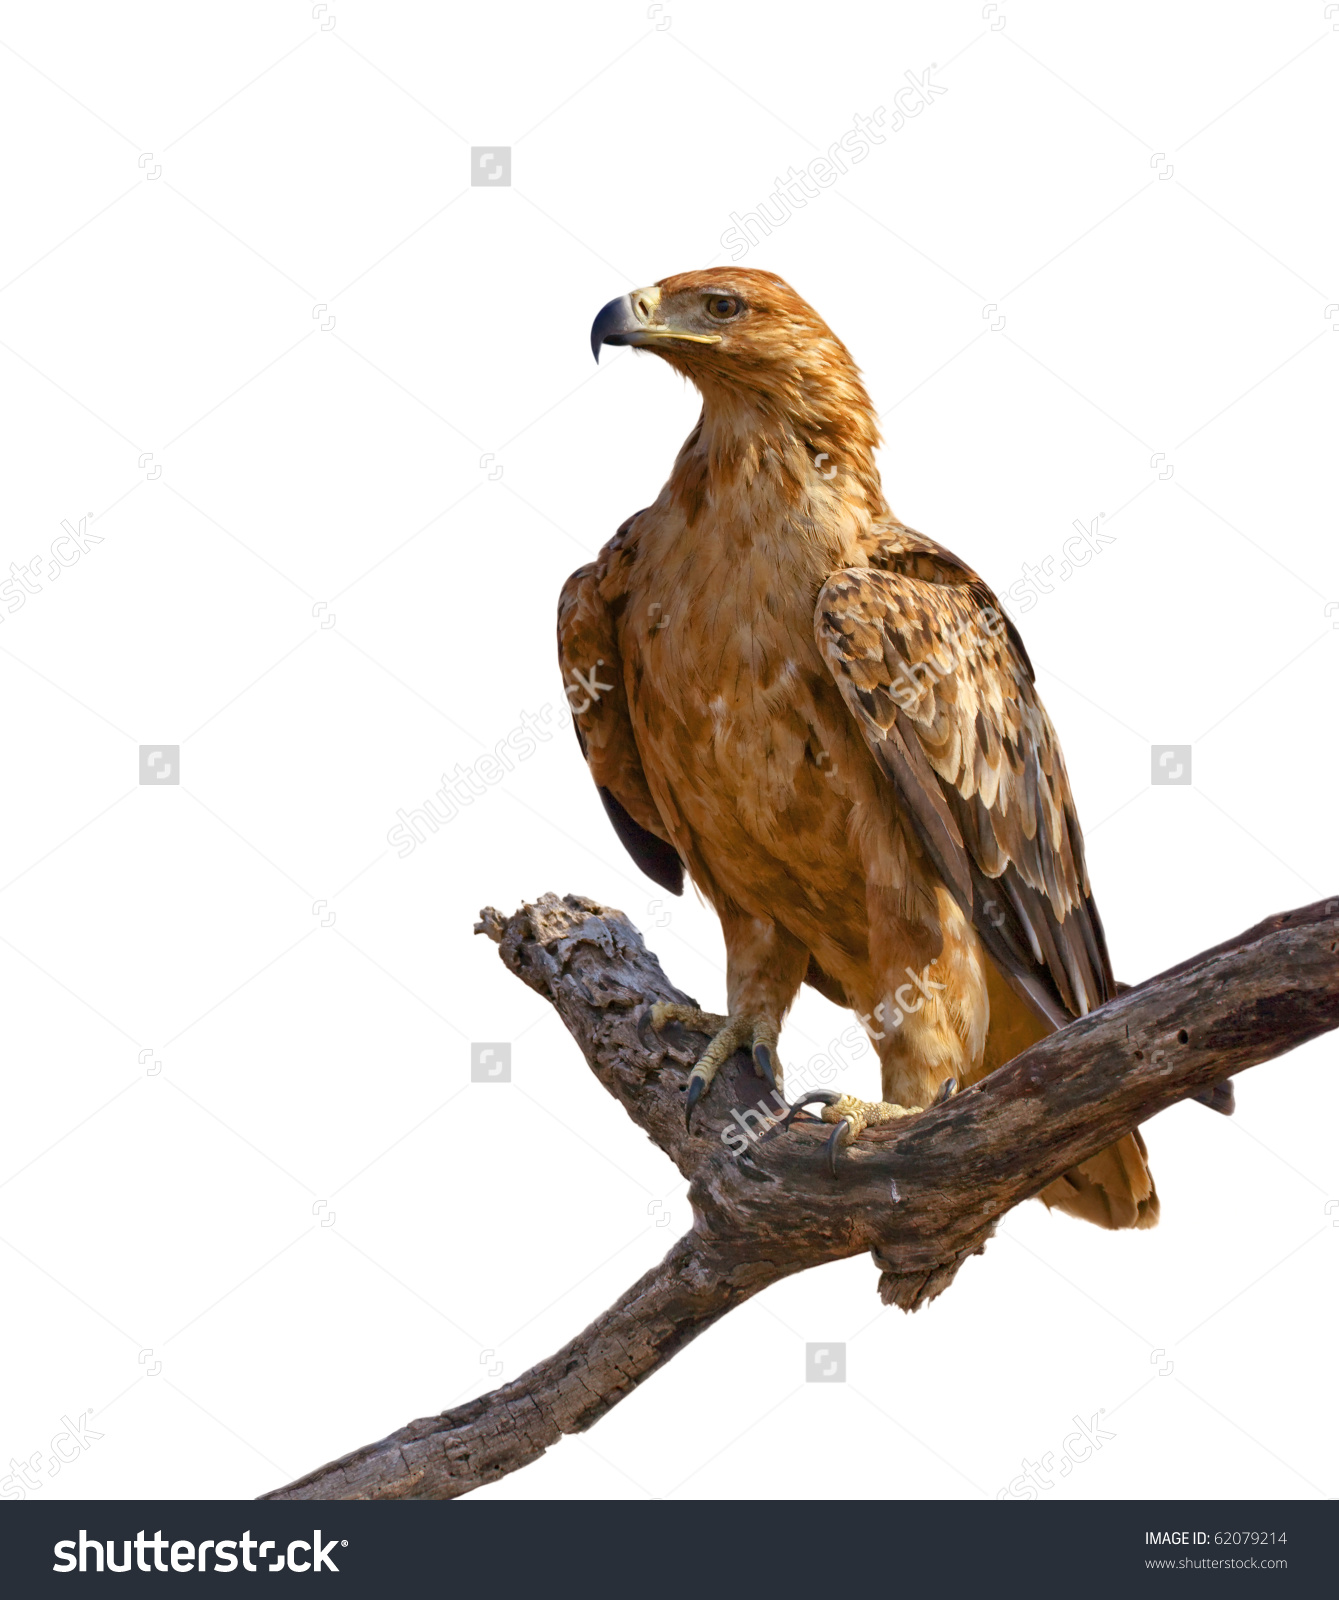 Tawny Eagle clipart #8, Download drawings